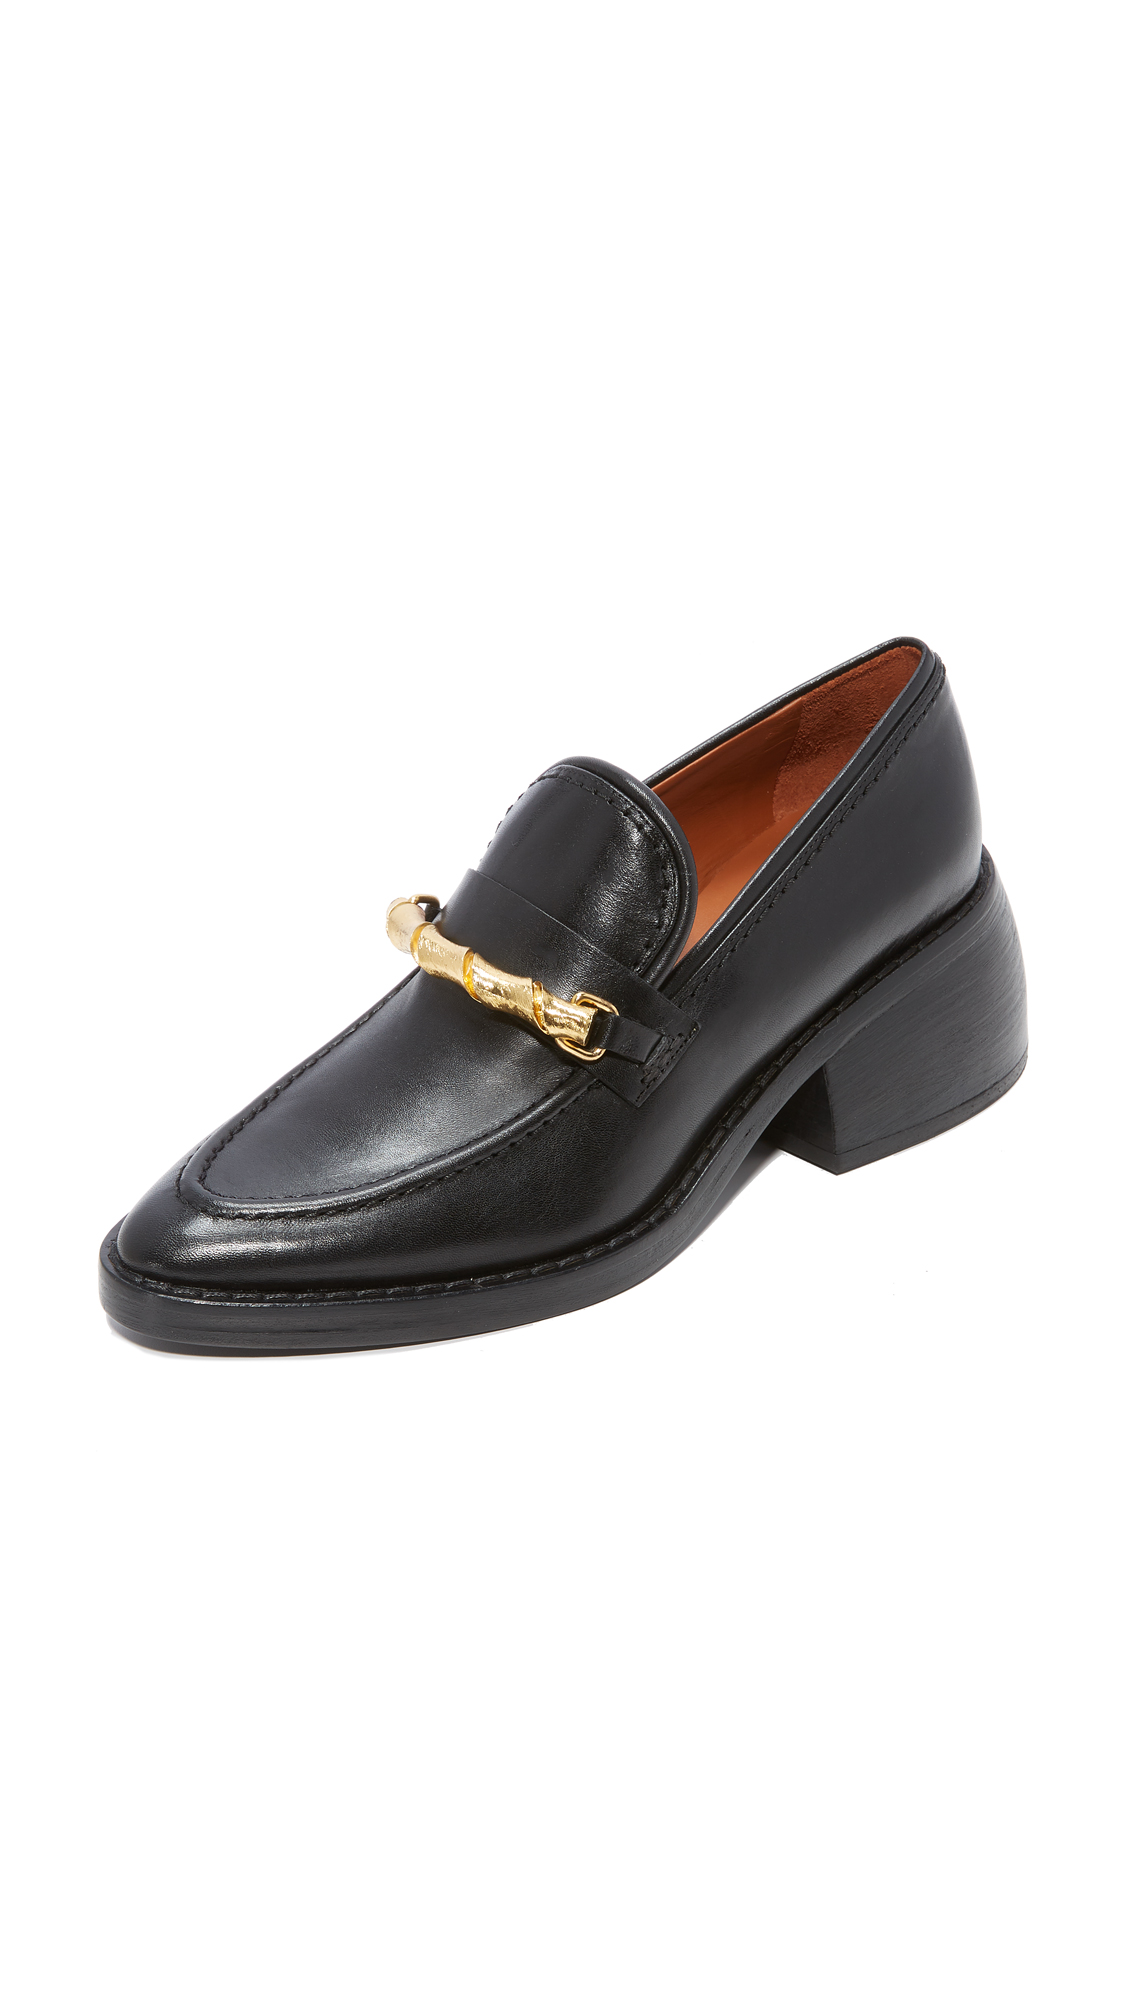 Joseph McGraw College Loafers - Nero